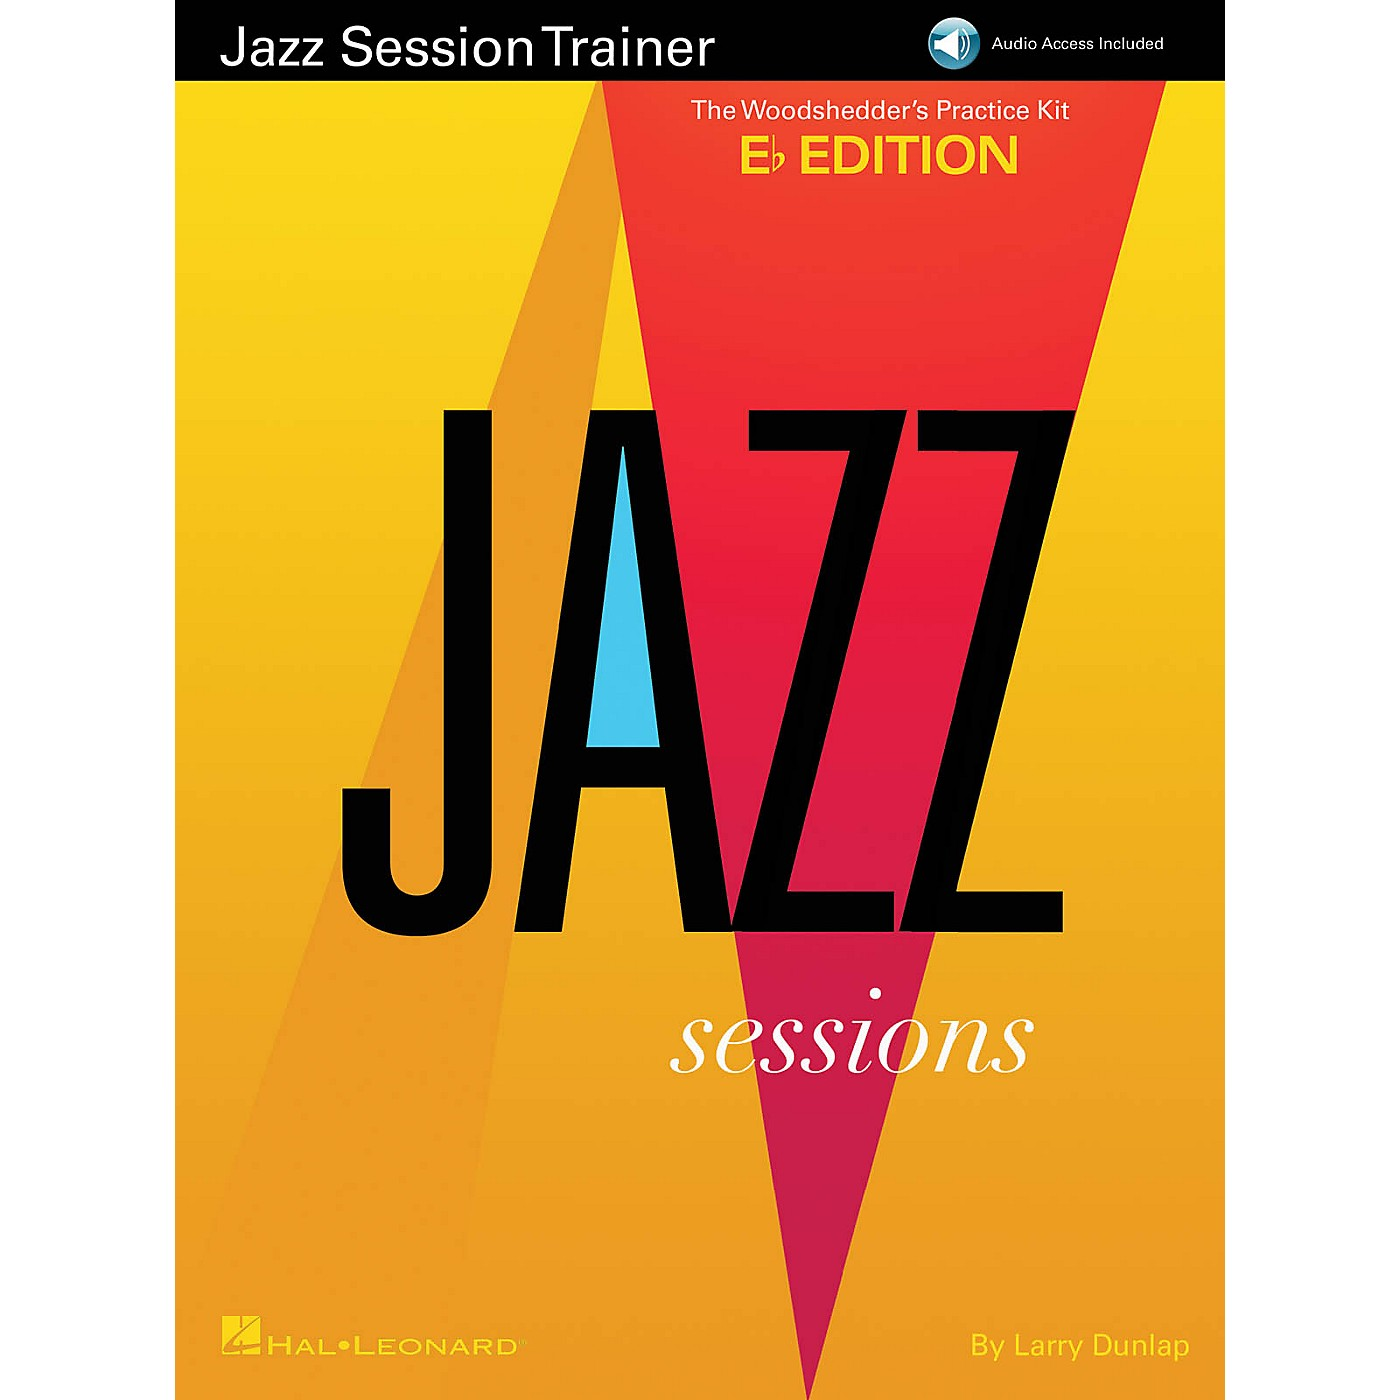 Hal Leonard Jazz Session Trainer Jazz Instruction Series Softcover Audio Online Written by Larry Dunlop thumbnail